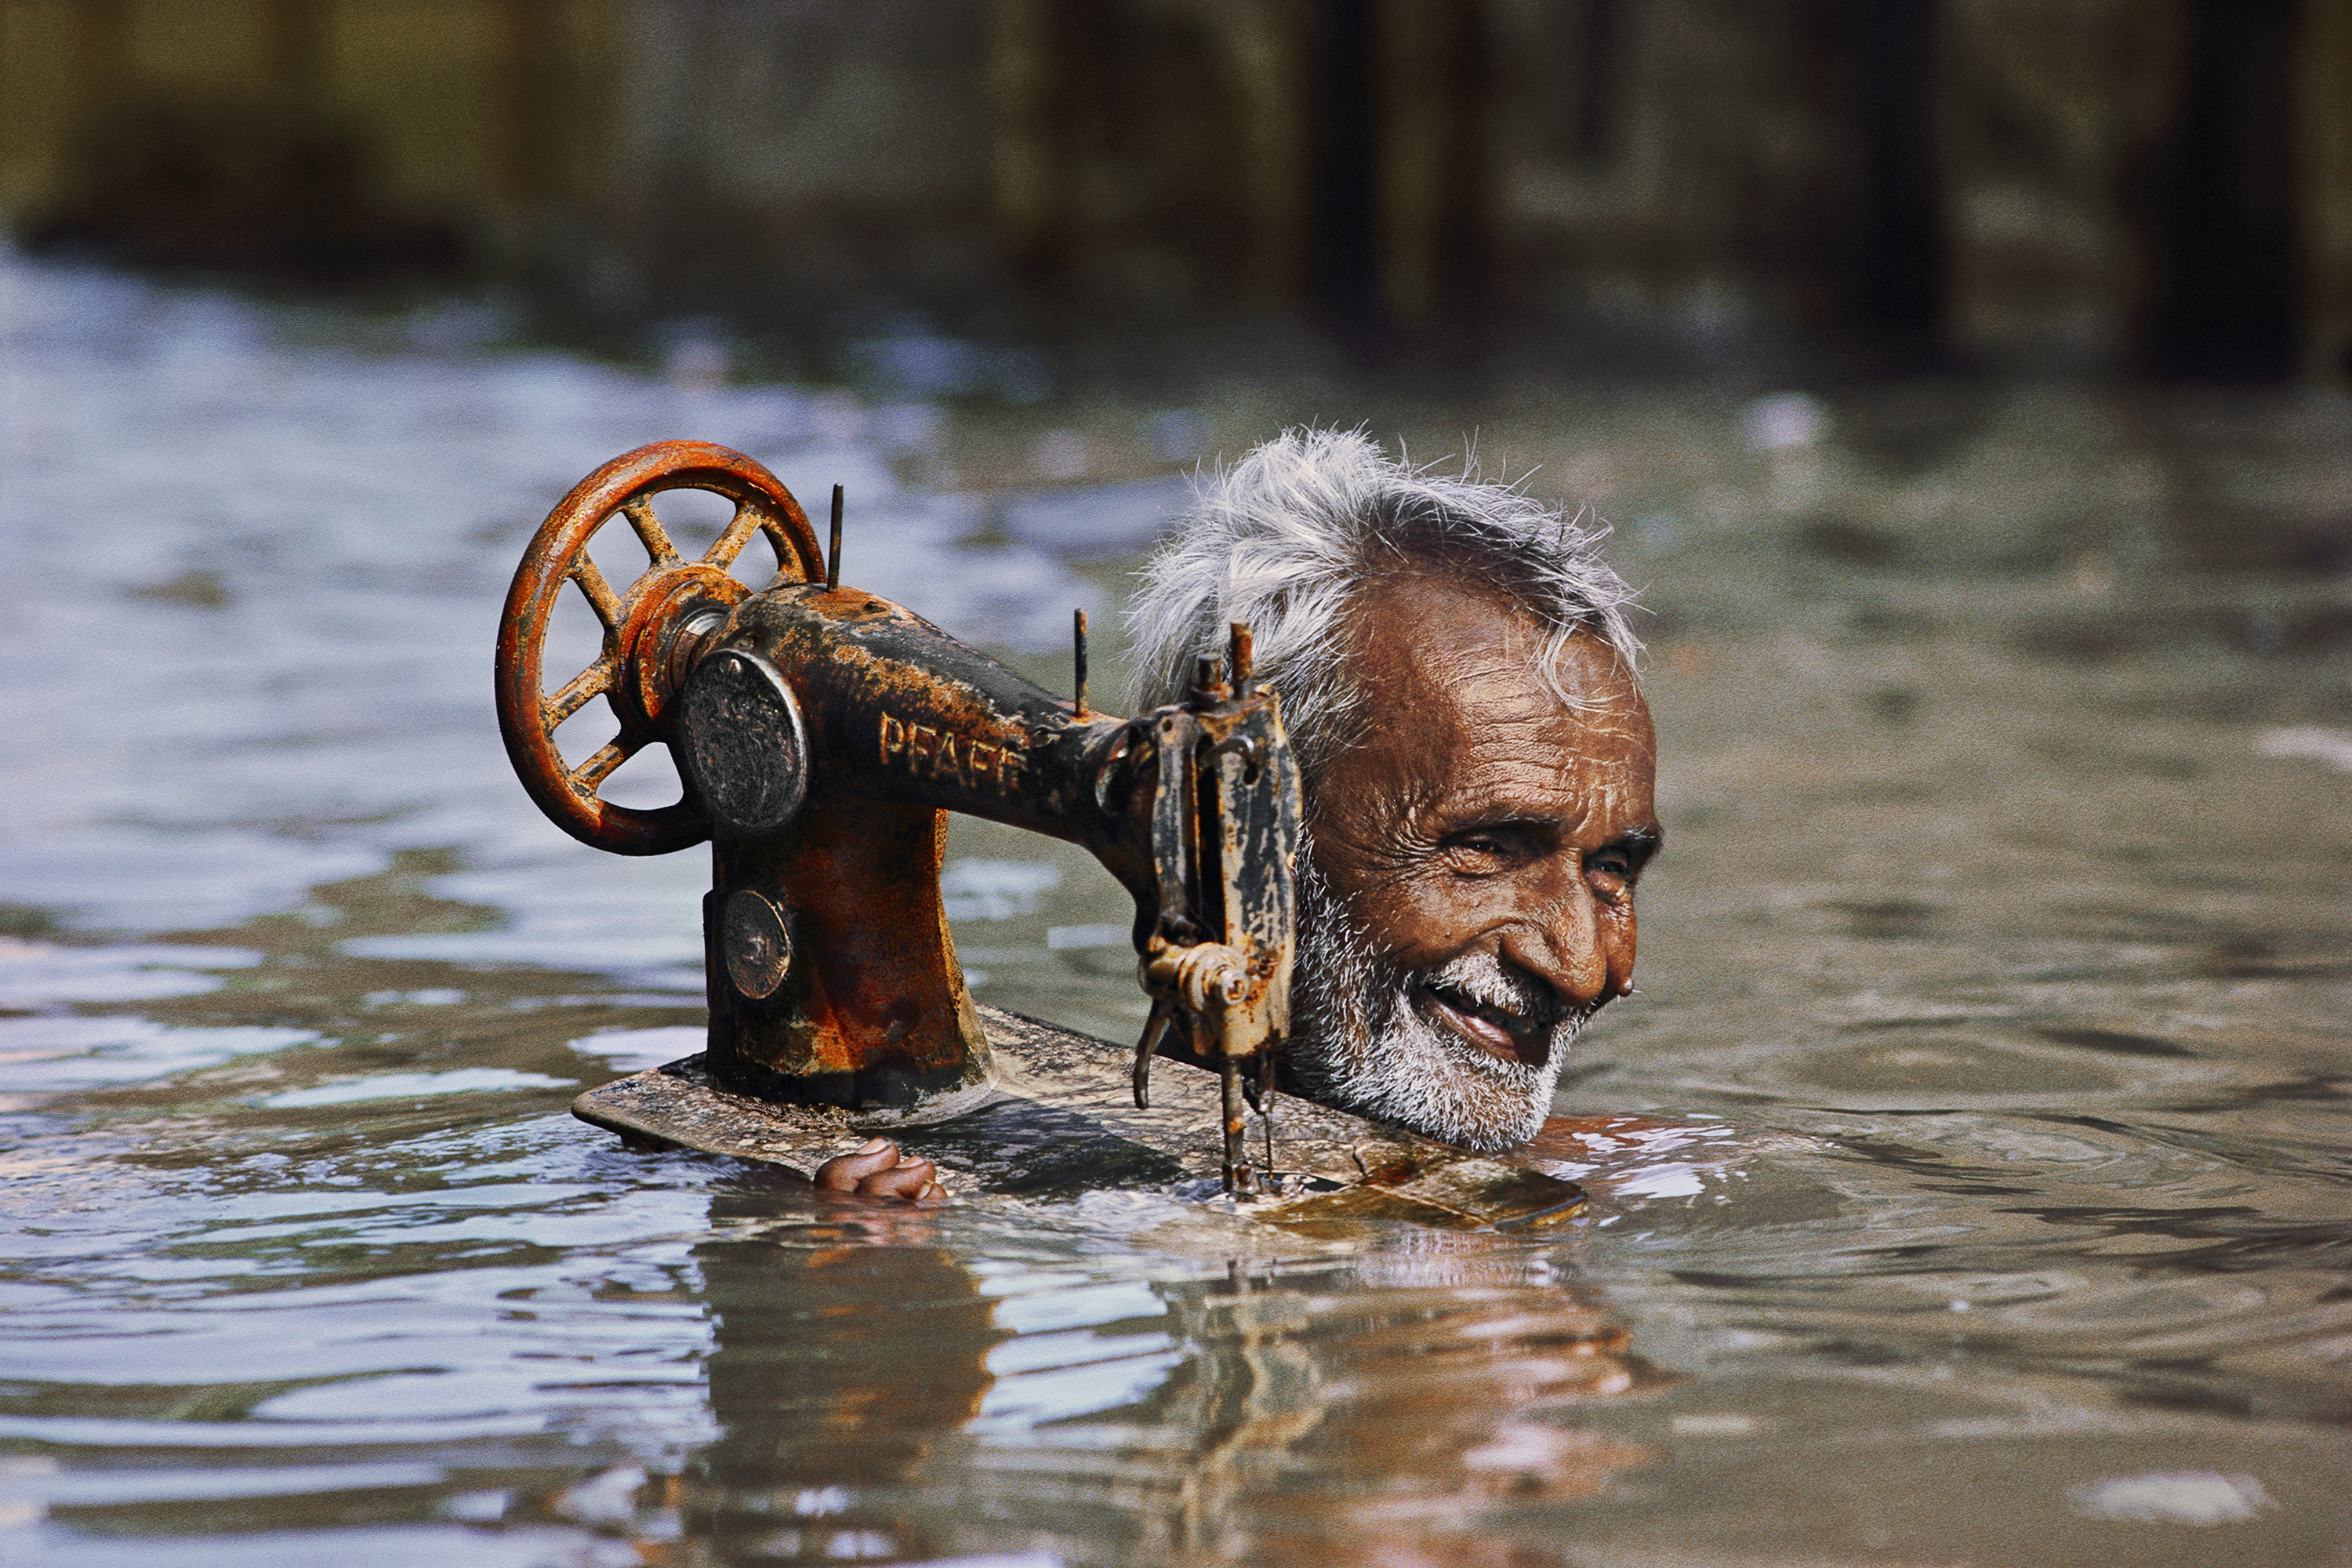 Tailor carries his sewing machine through monsoon floodwaters. Fonte: www.mucsarnok.hu